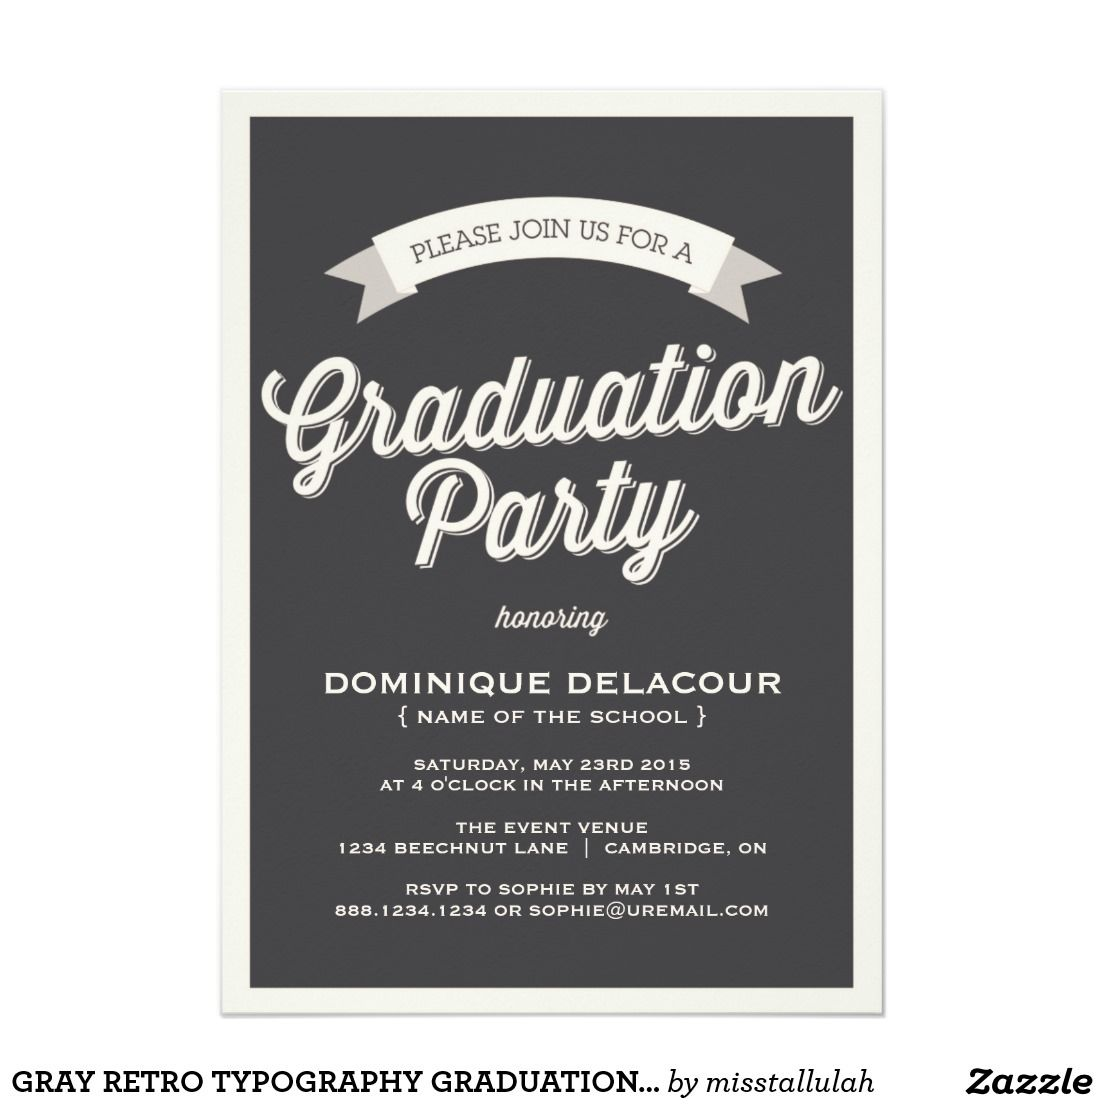 17 Best images about Graduation Party Invitations on Pinterest ...